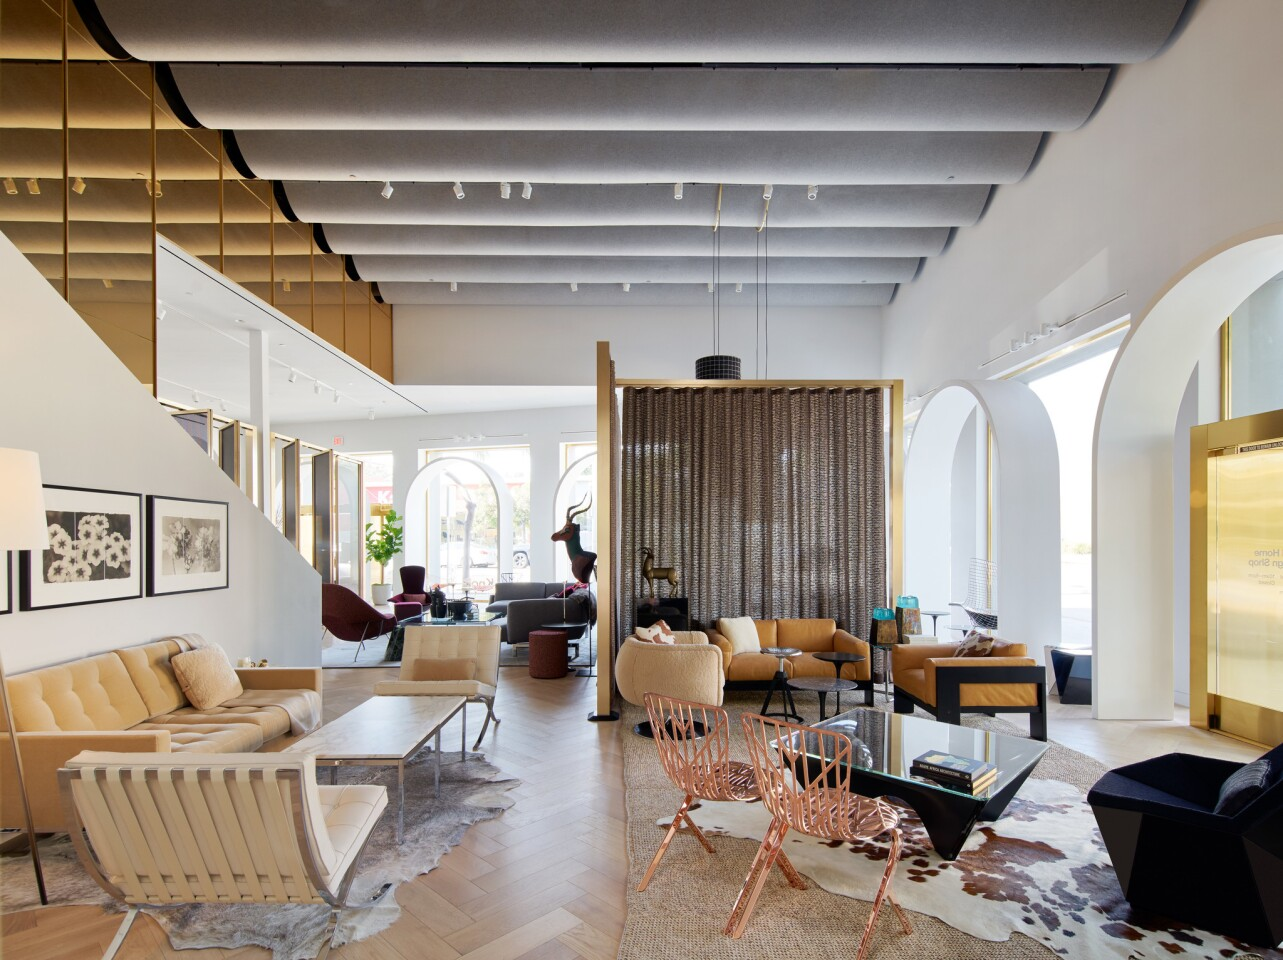 The new 4,000-square-foot Knoll showroom opened Jan. 16 in West Hollywood.